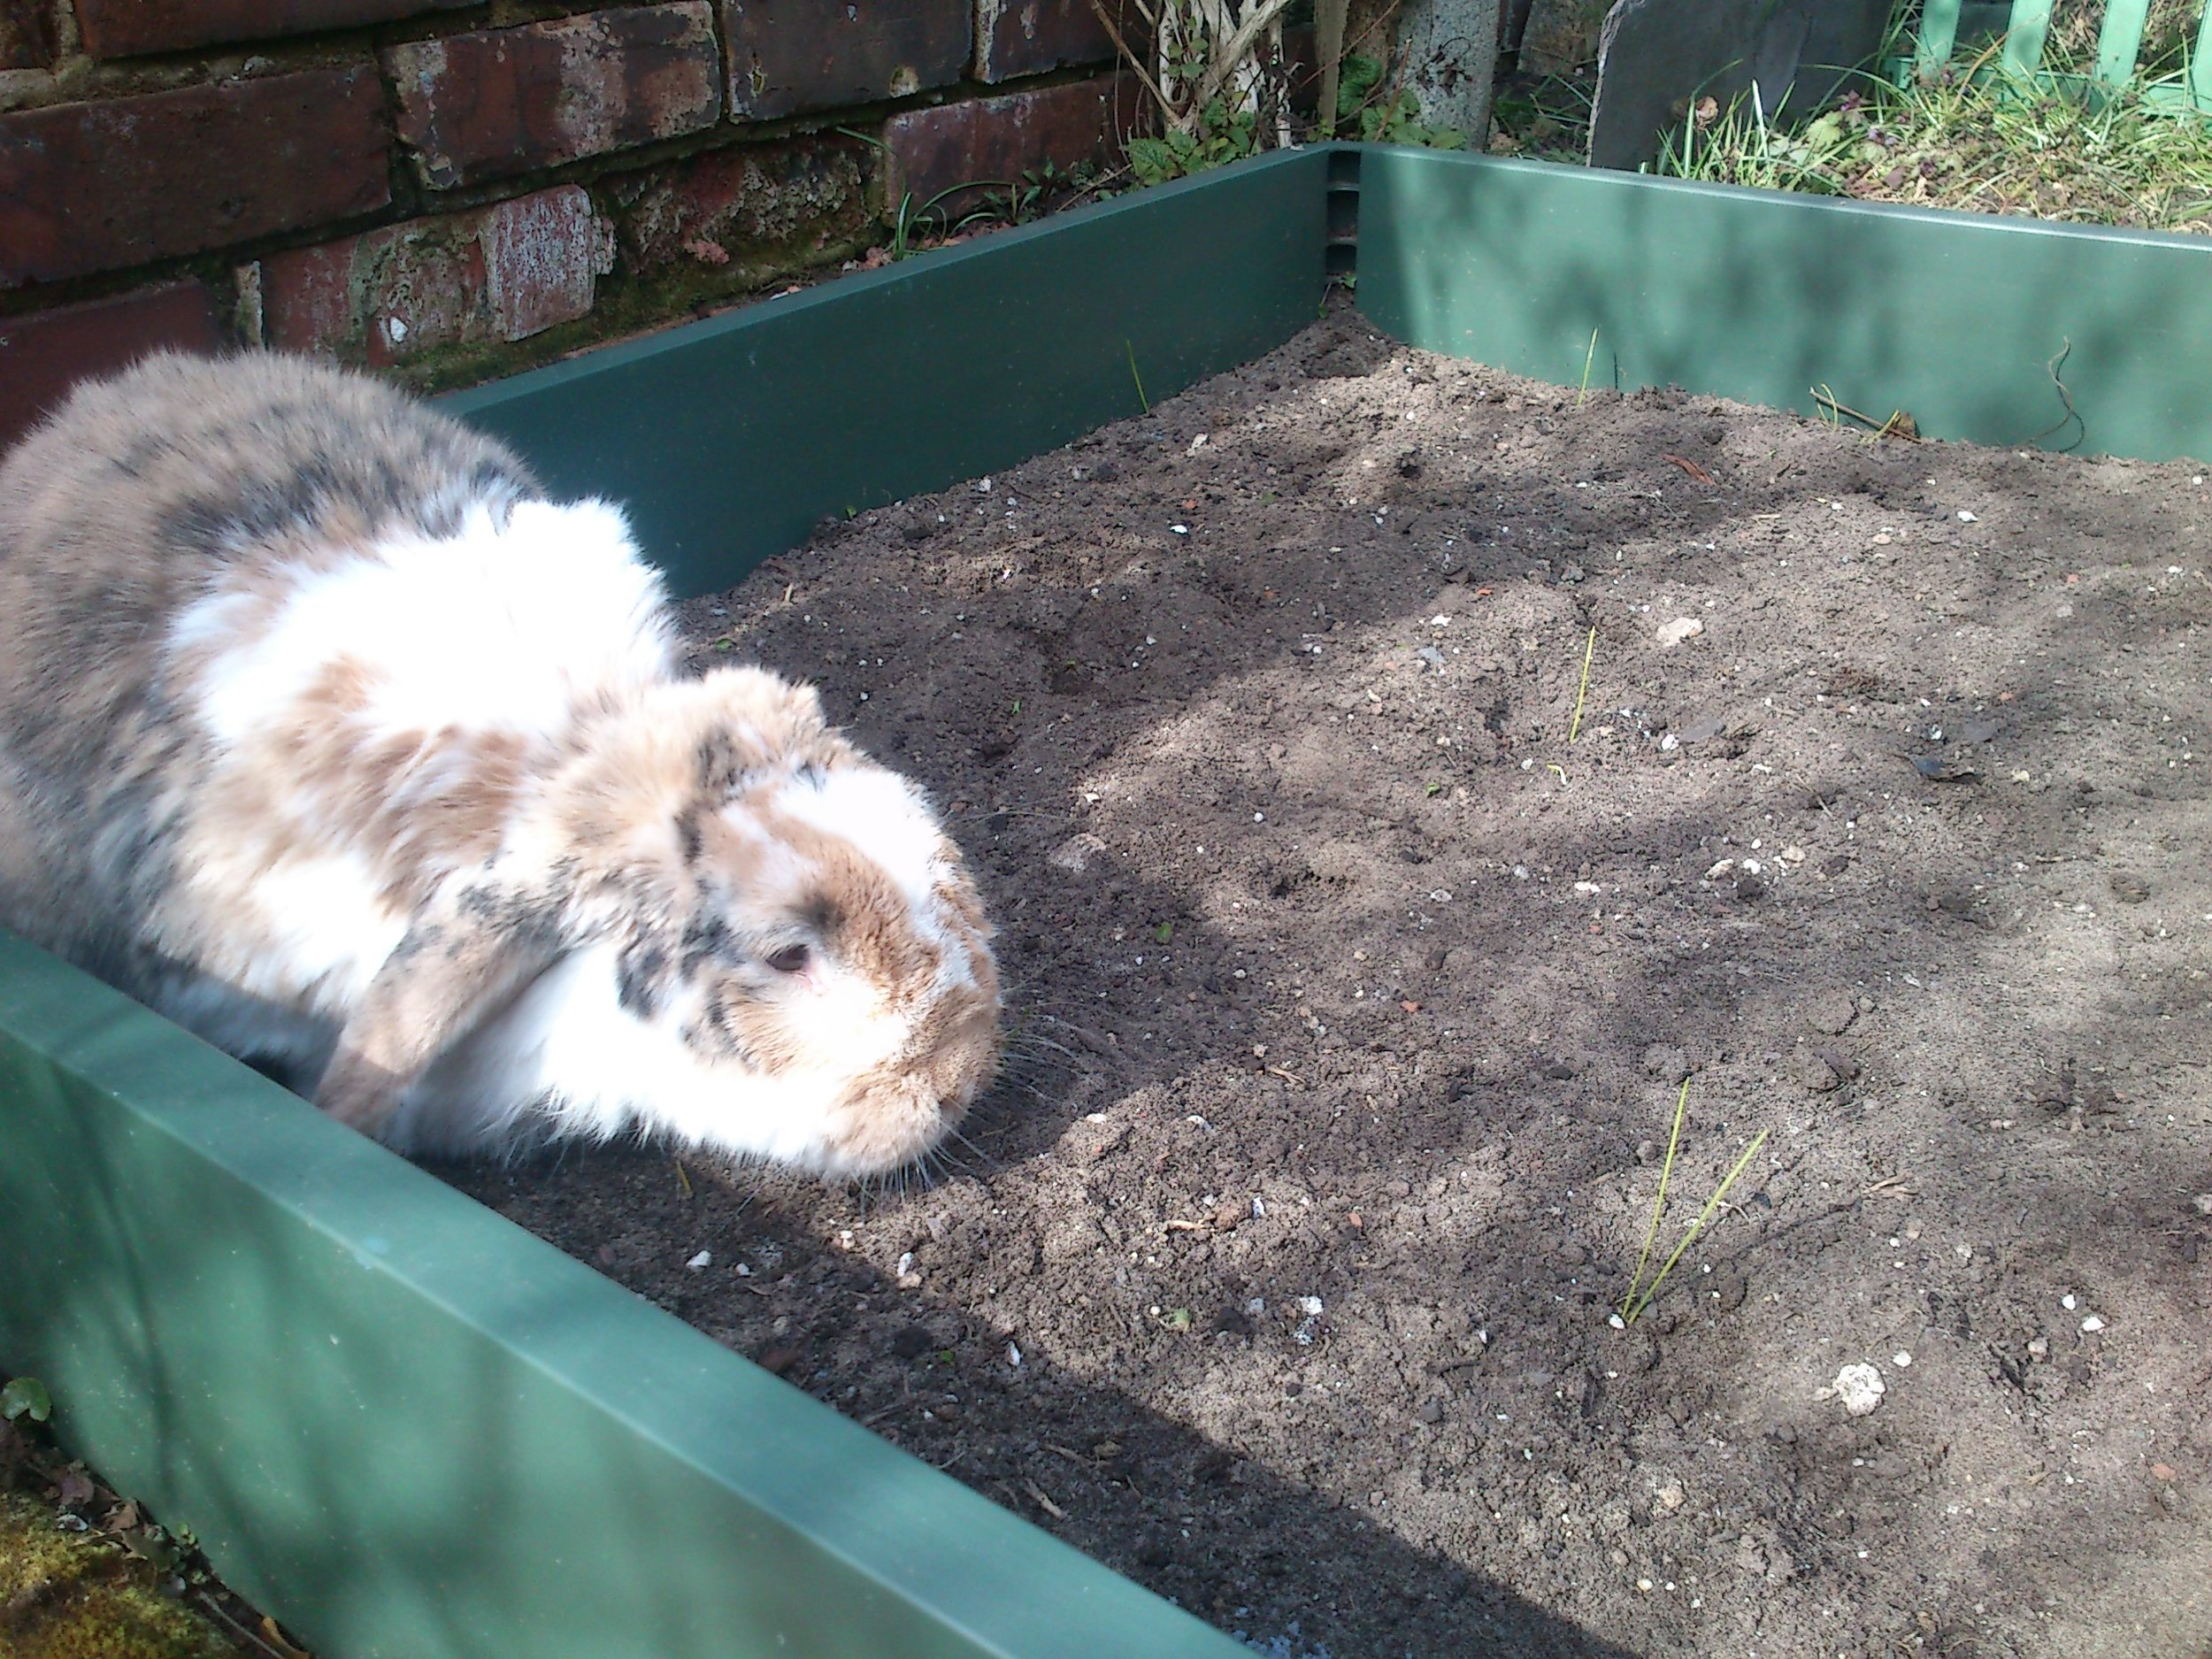 Impatient Bunny Checks the Newly-Planted Garden for Vegetables